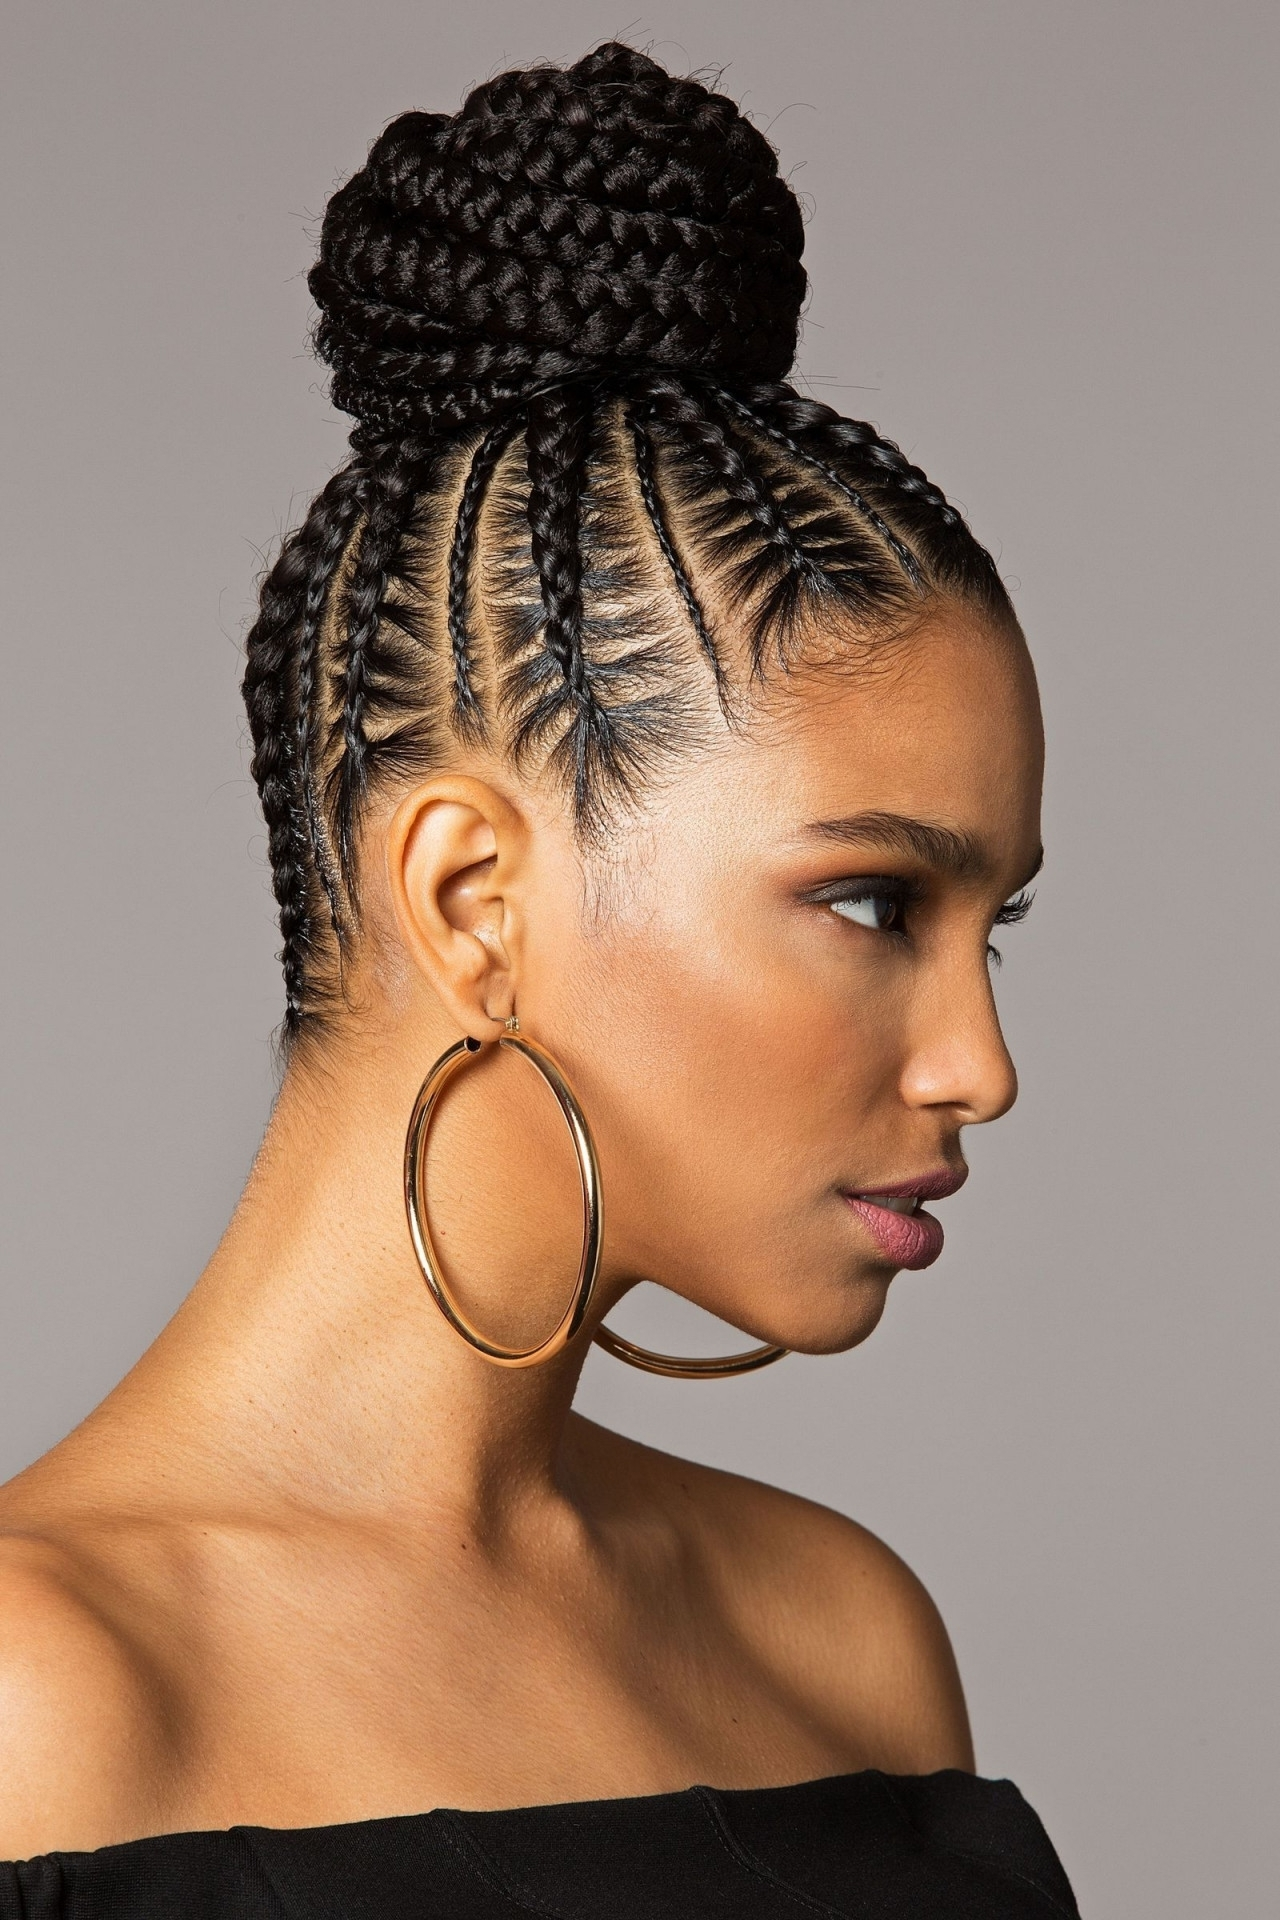 Updo Cornrow Hairstyles For Black Women 2018 – Twelveminutemuse Within Favorite Cornrows Hairstyles For Oval Faces (Gallery 10 of 15)